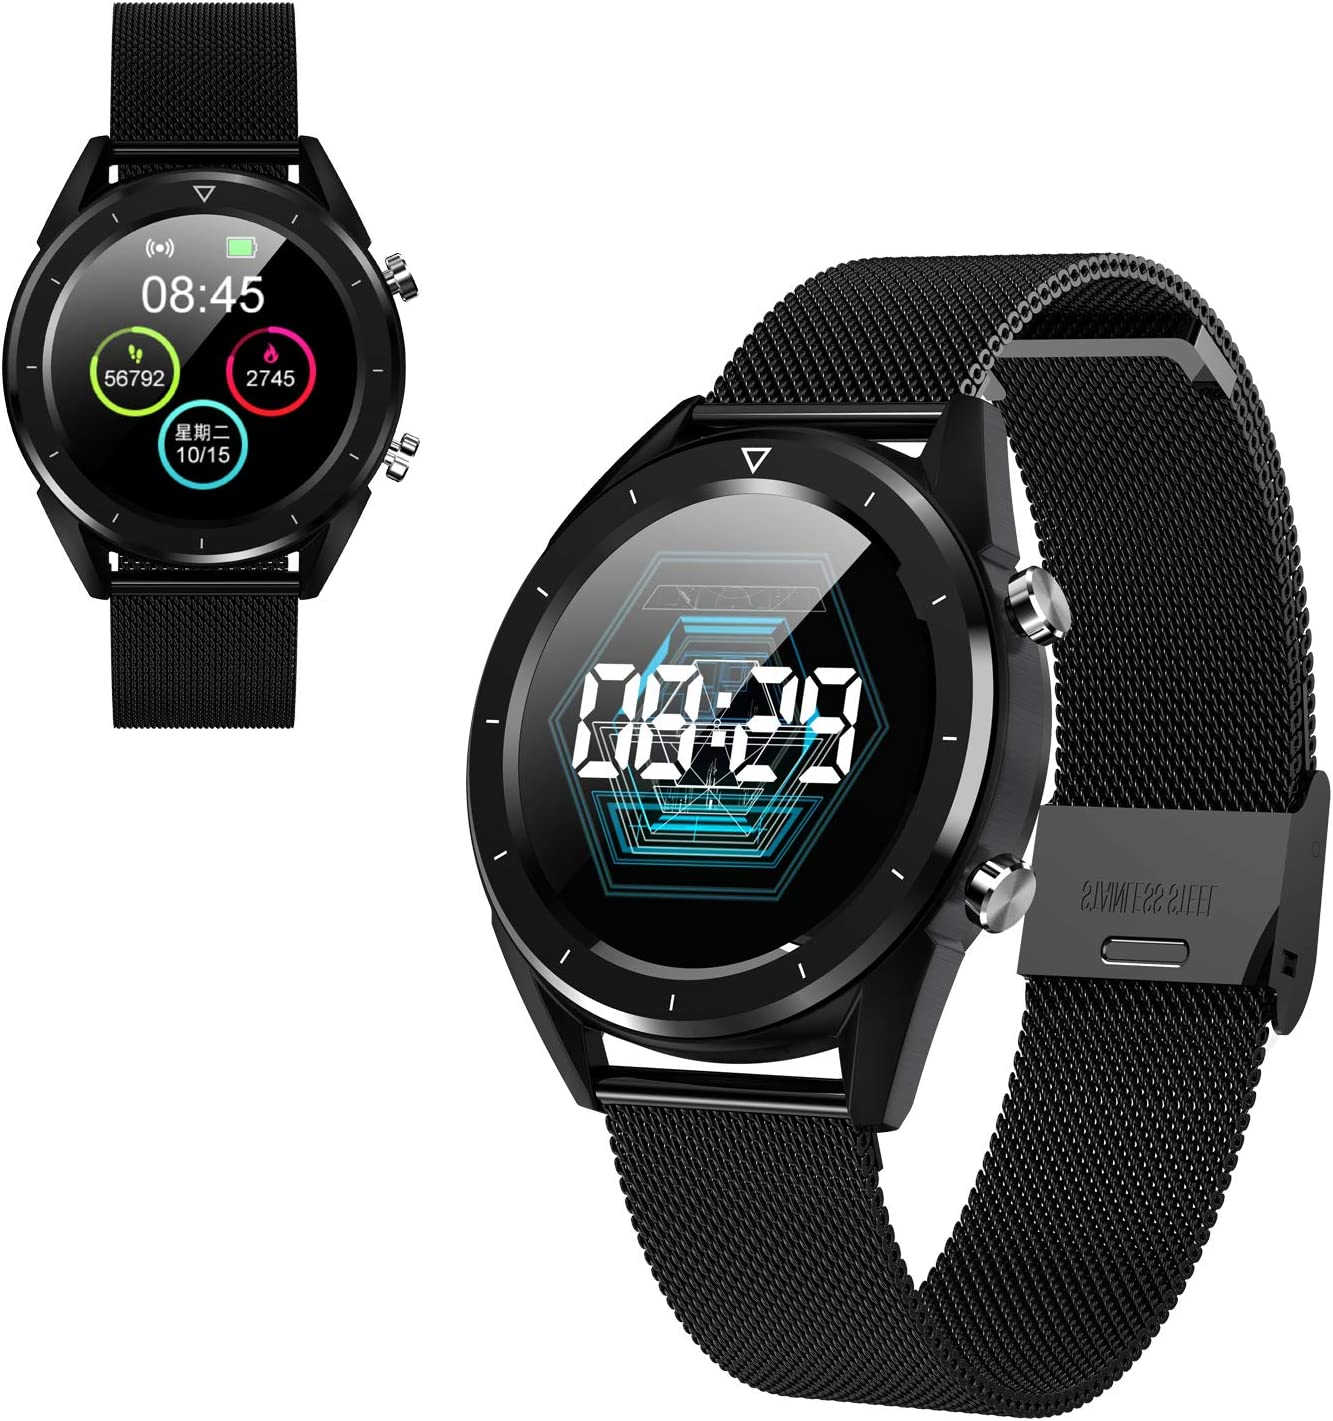 Reloj Inteligente multifunción para Hombres, Pantalla a Color Control de presión Arterial Smartwatch Modo multideportivo Monitorización de ECG para iOS y Android, Reloj Fitness Tracker (Steel-Black)